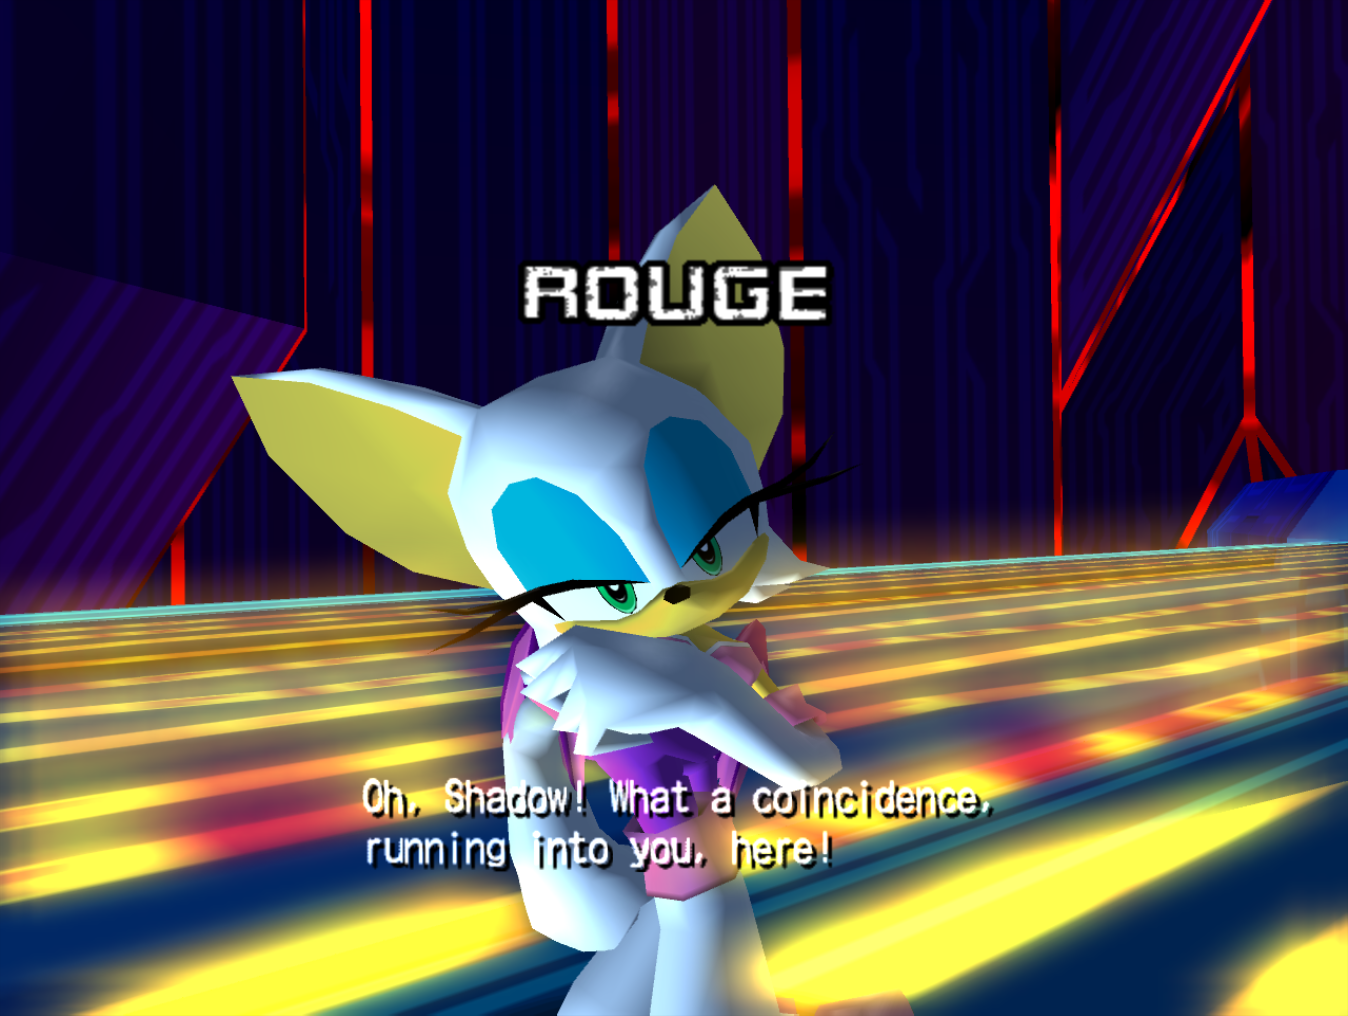 File:Rouge - Digital Circuit.png